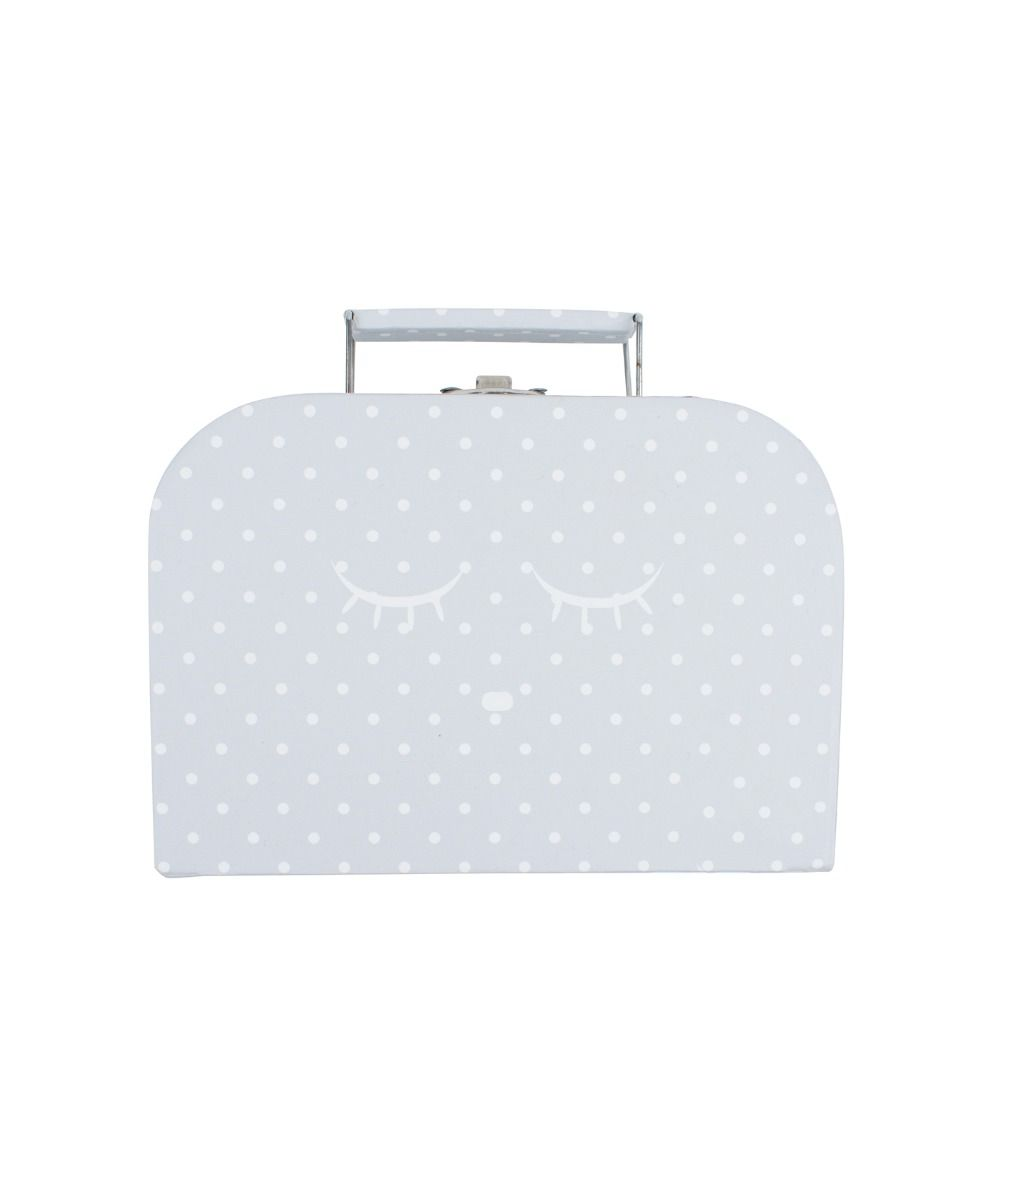 Livly SLEEPING TRUNK-GREY S